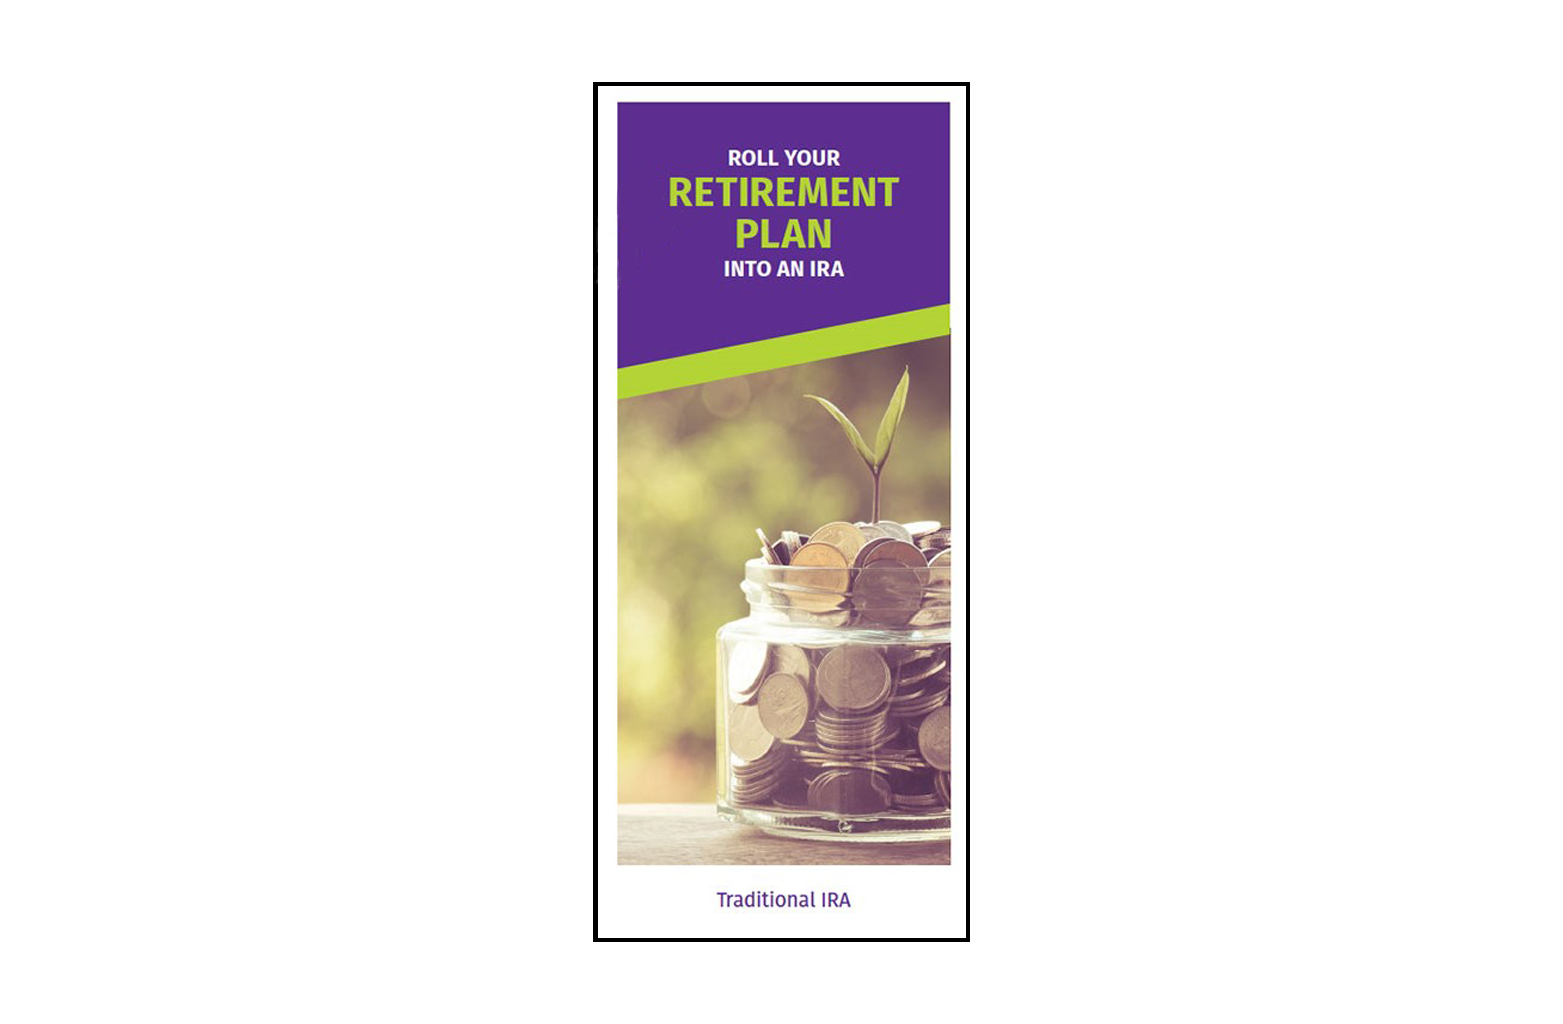 Roll Your Retirement Plan Into an IRA Brochure